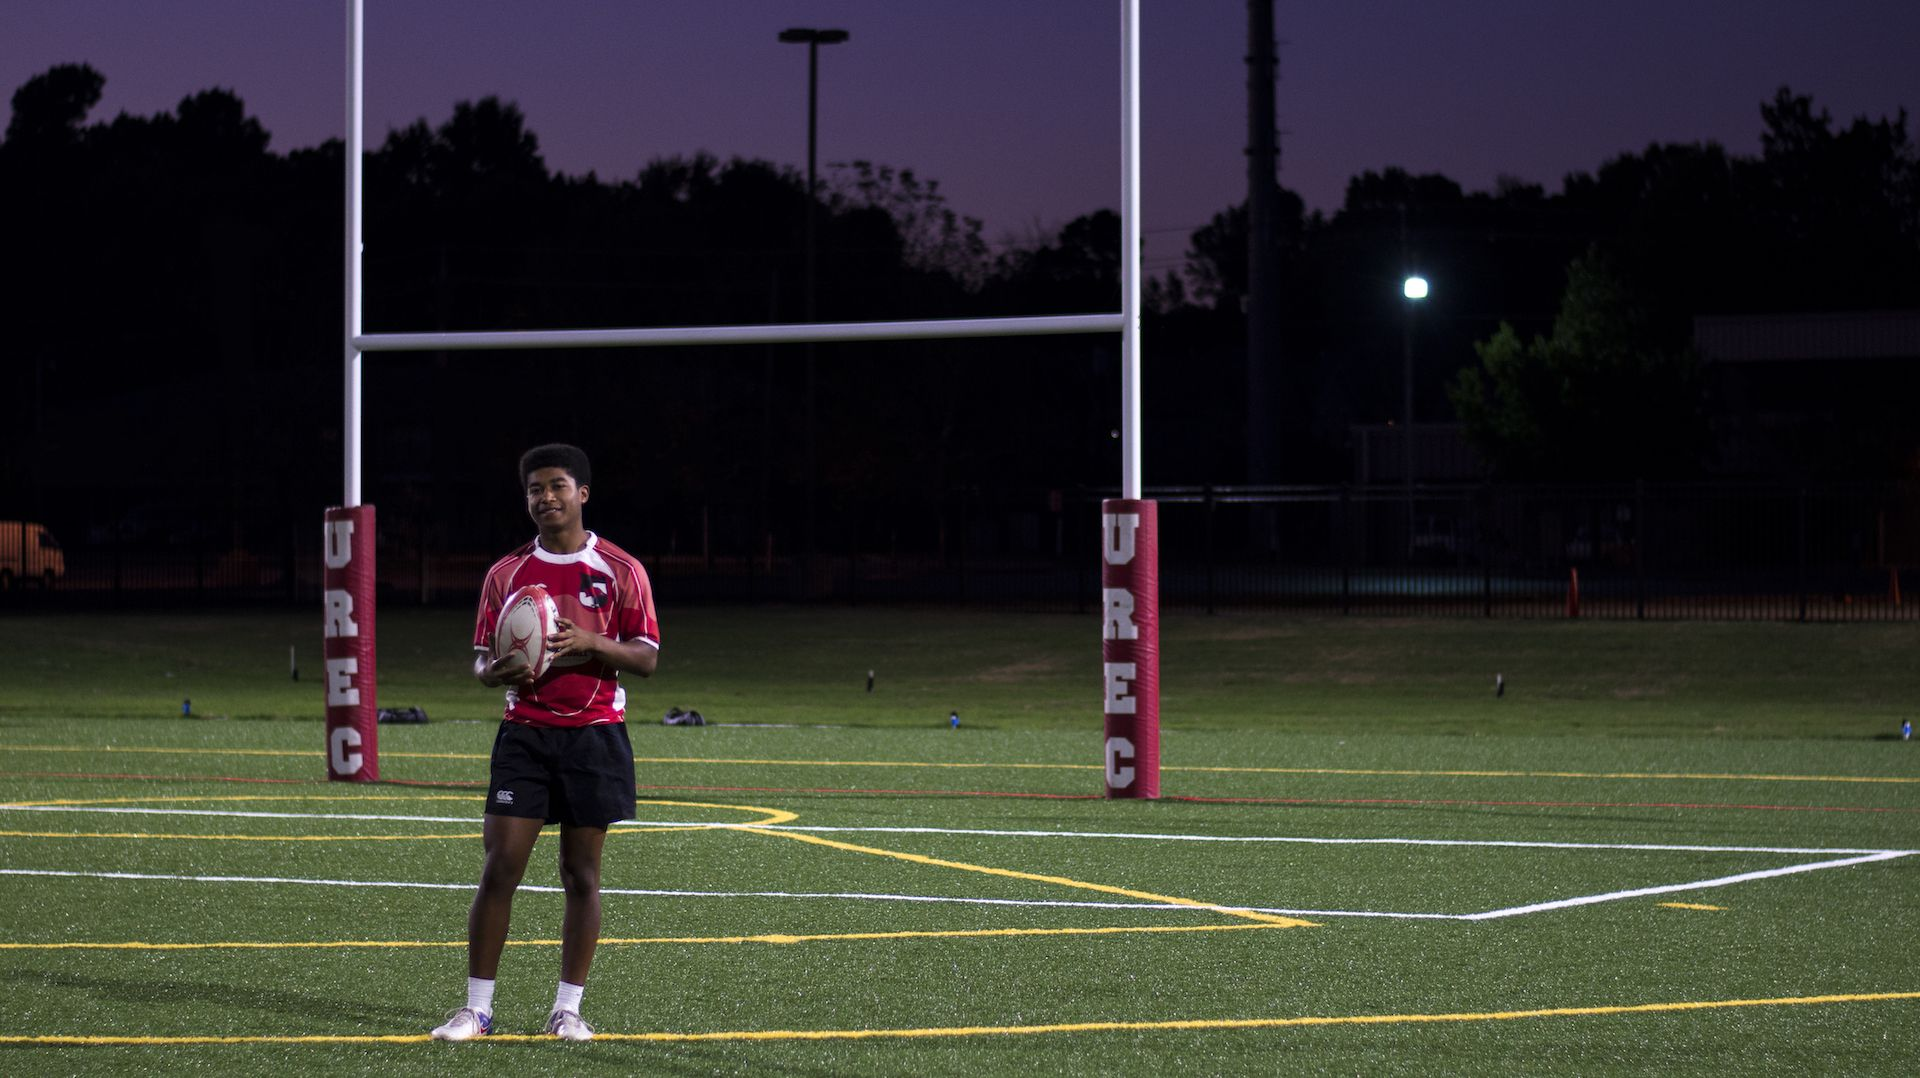 Arkansas men's rugby team member holding rugby ball